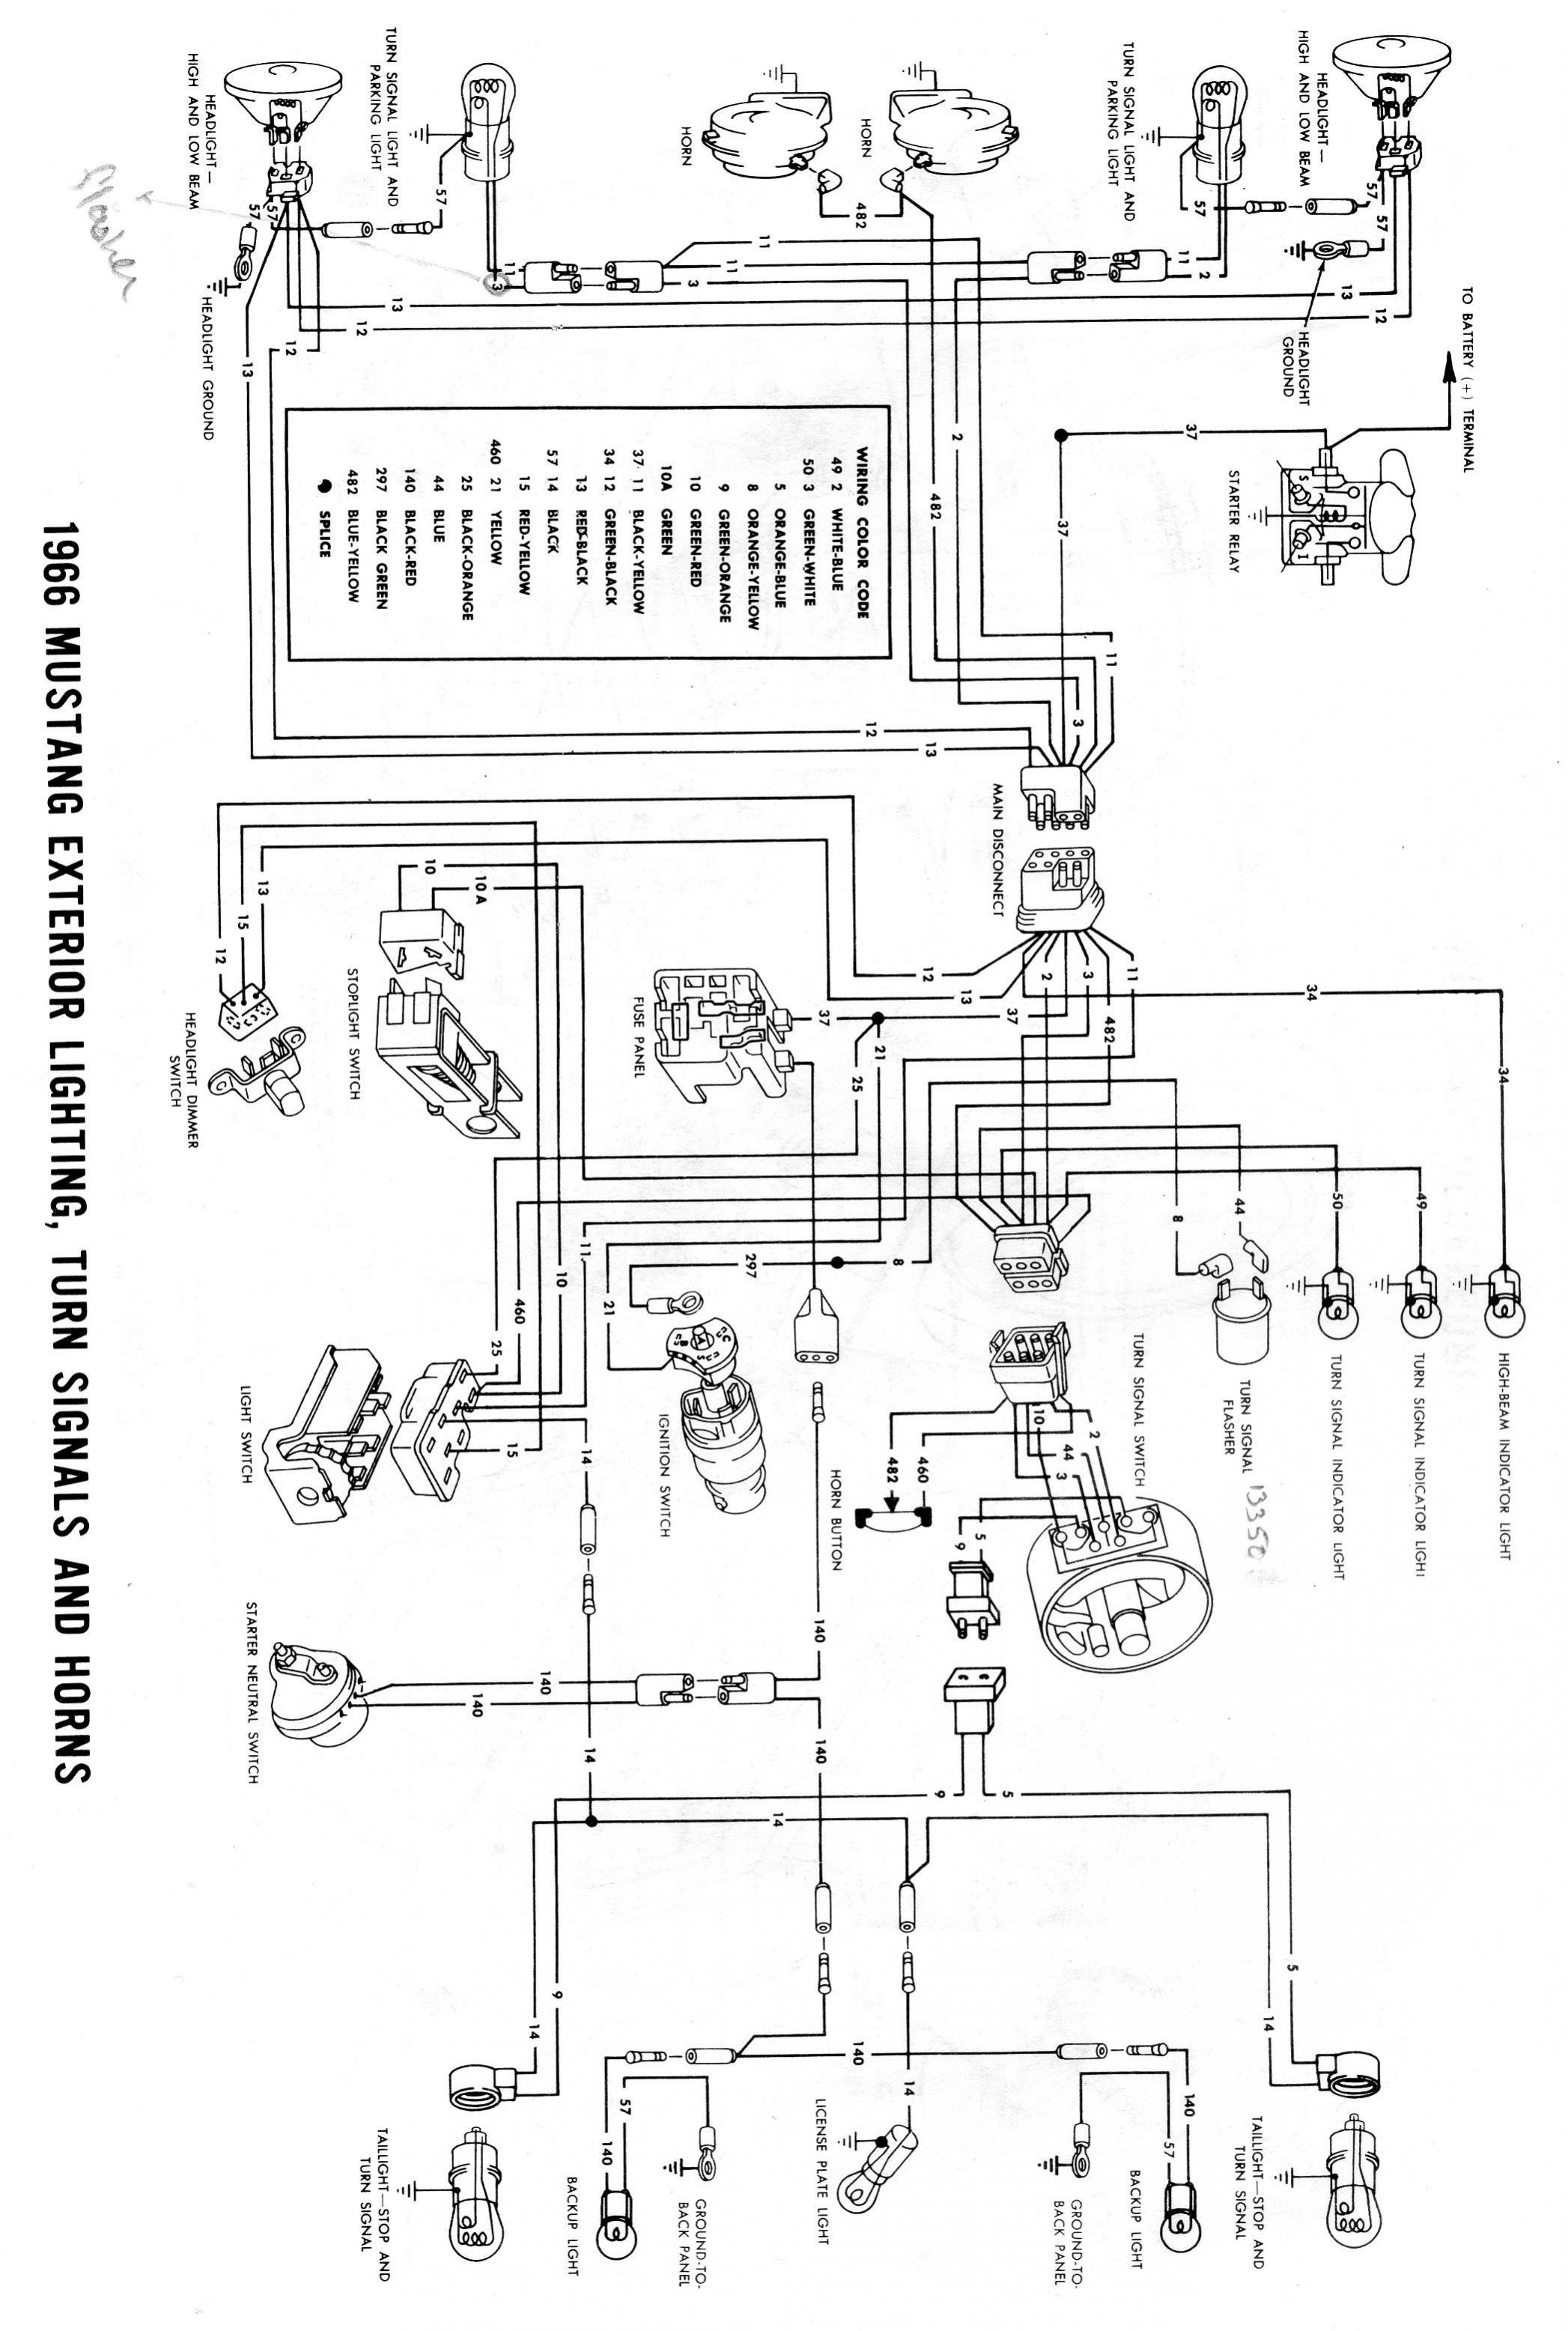 1935 Chevy Truck Wiring For Headlights On Data Schema Chevrolet Diagram Coil Schematics Diagrams U2022 Rh Seniorlivinguniversity Co Wood Kits